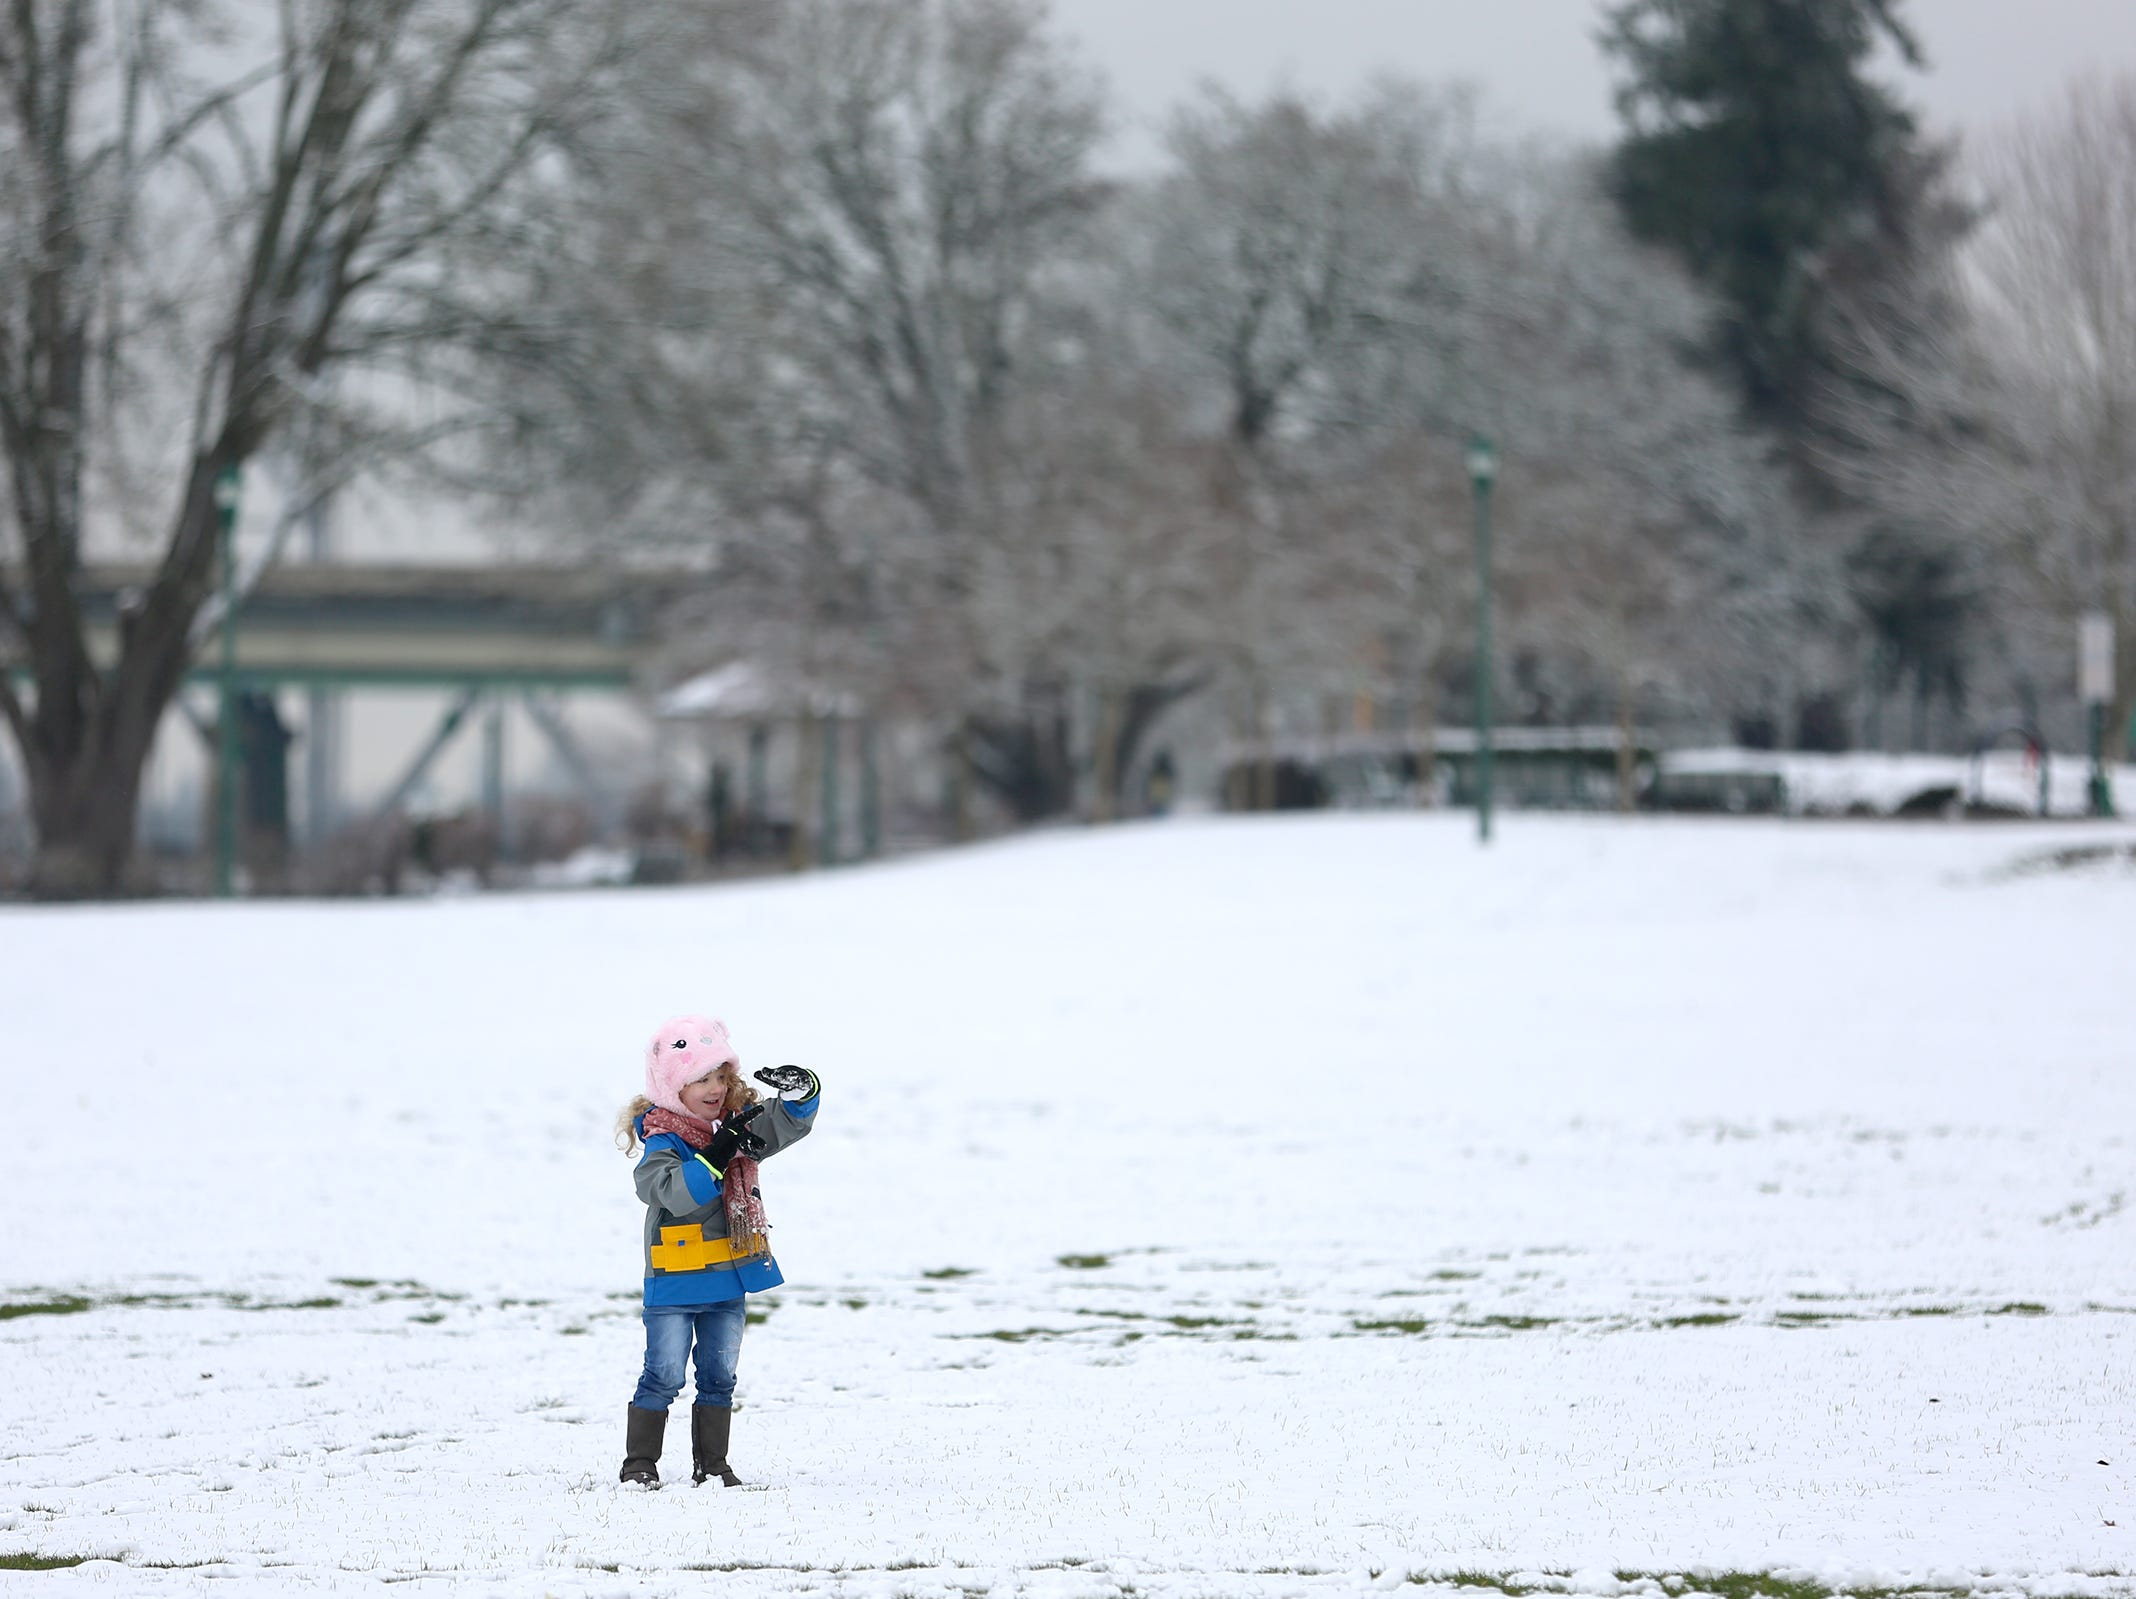 Liliana Johnson, 4, plays in the snow at Riverfront Park in Salem on Tuesday, Feb. 5, 2019.